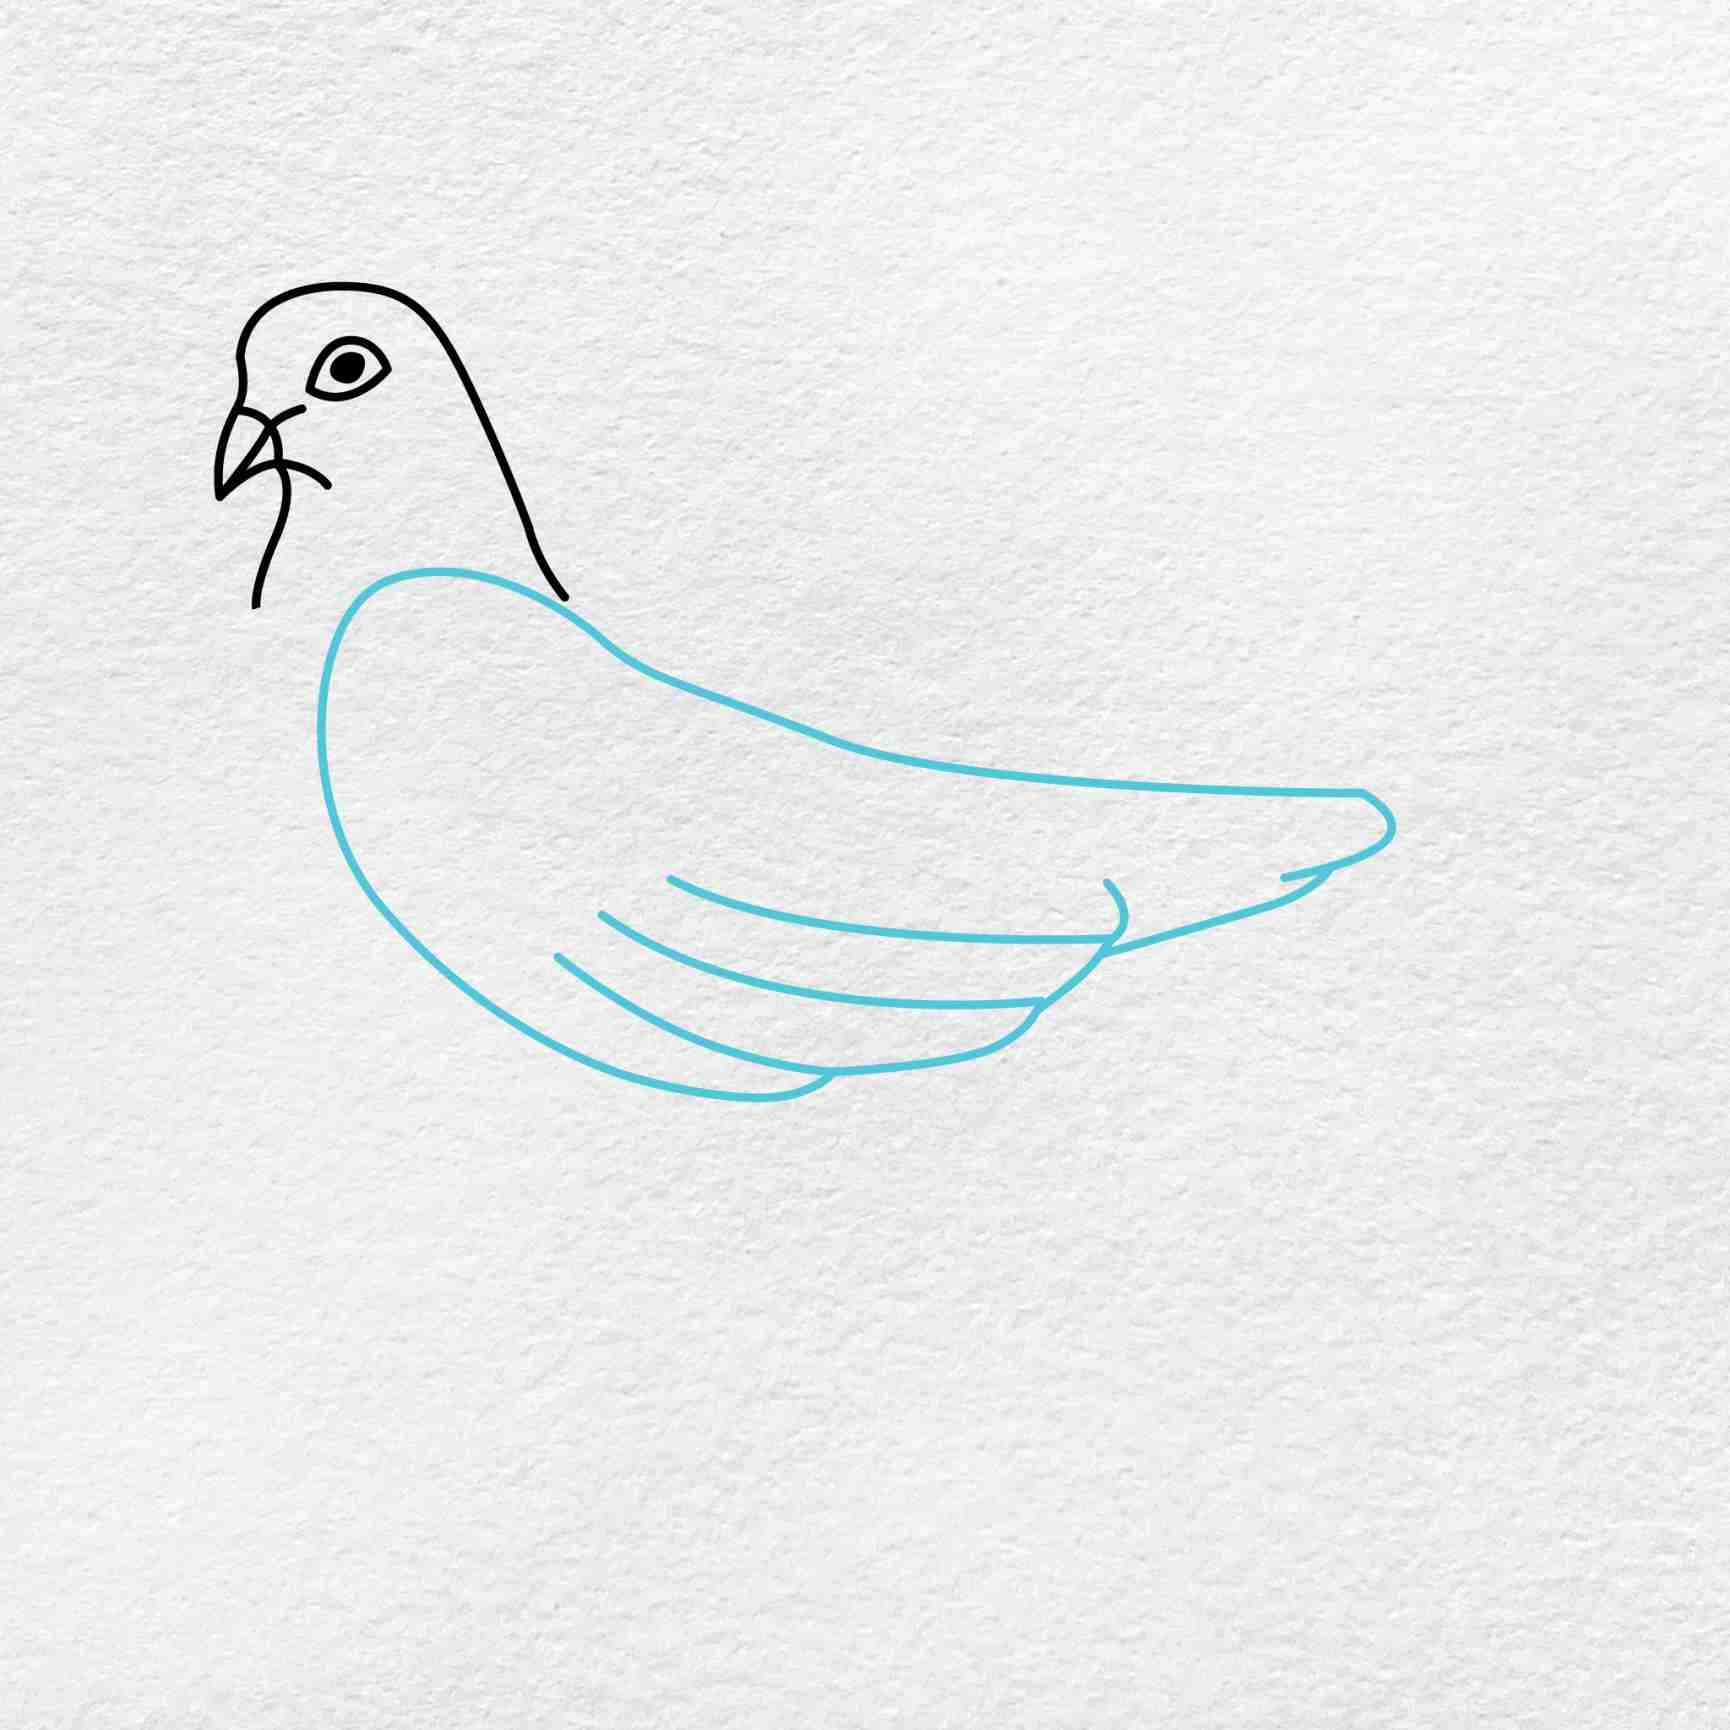 Dove Drawing: Step 2